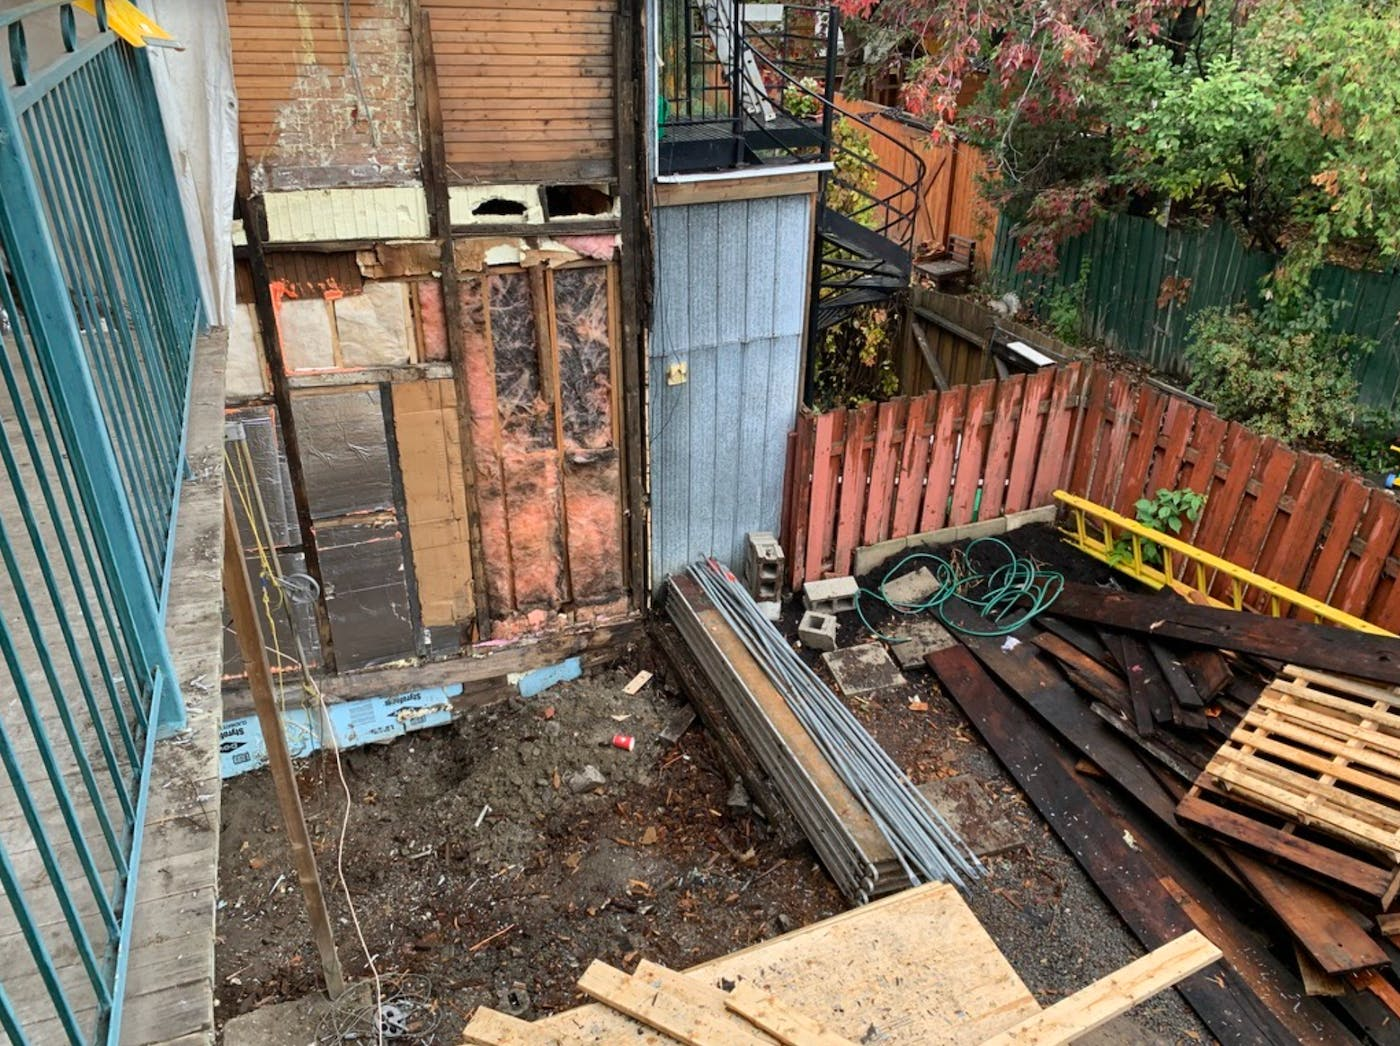 First floor extension and basement renovation in progress